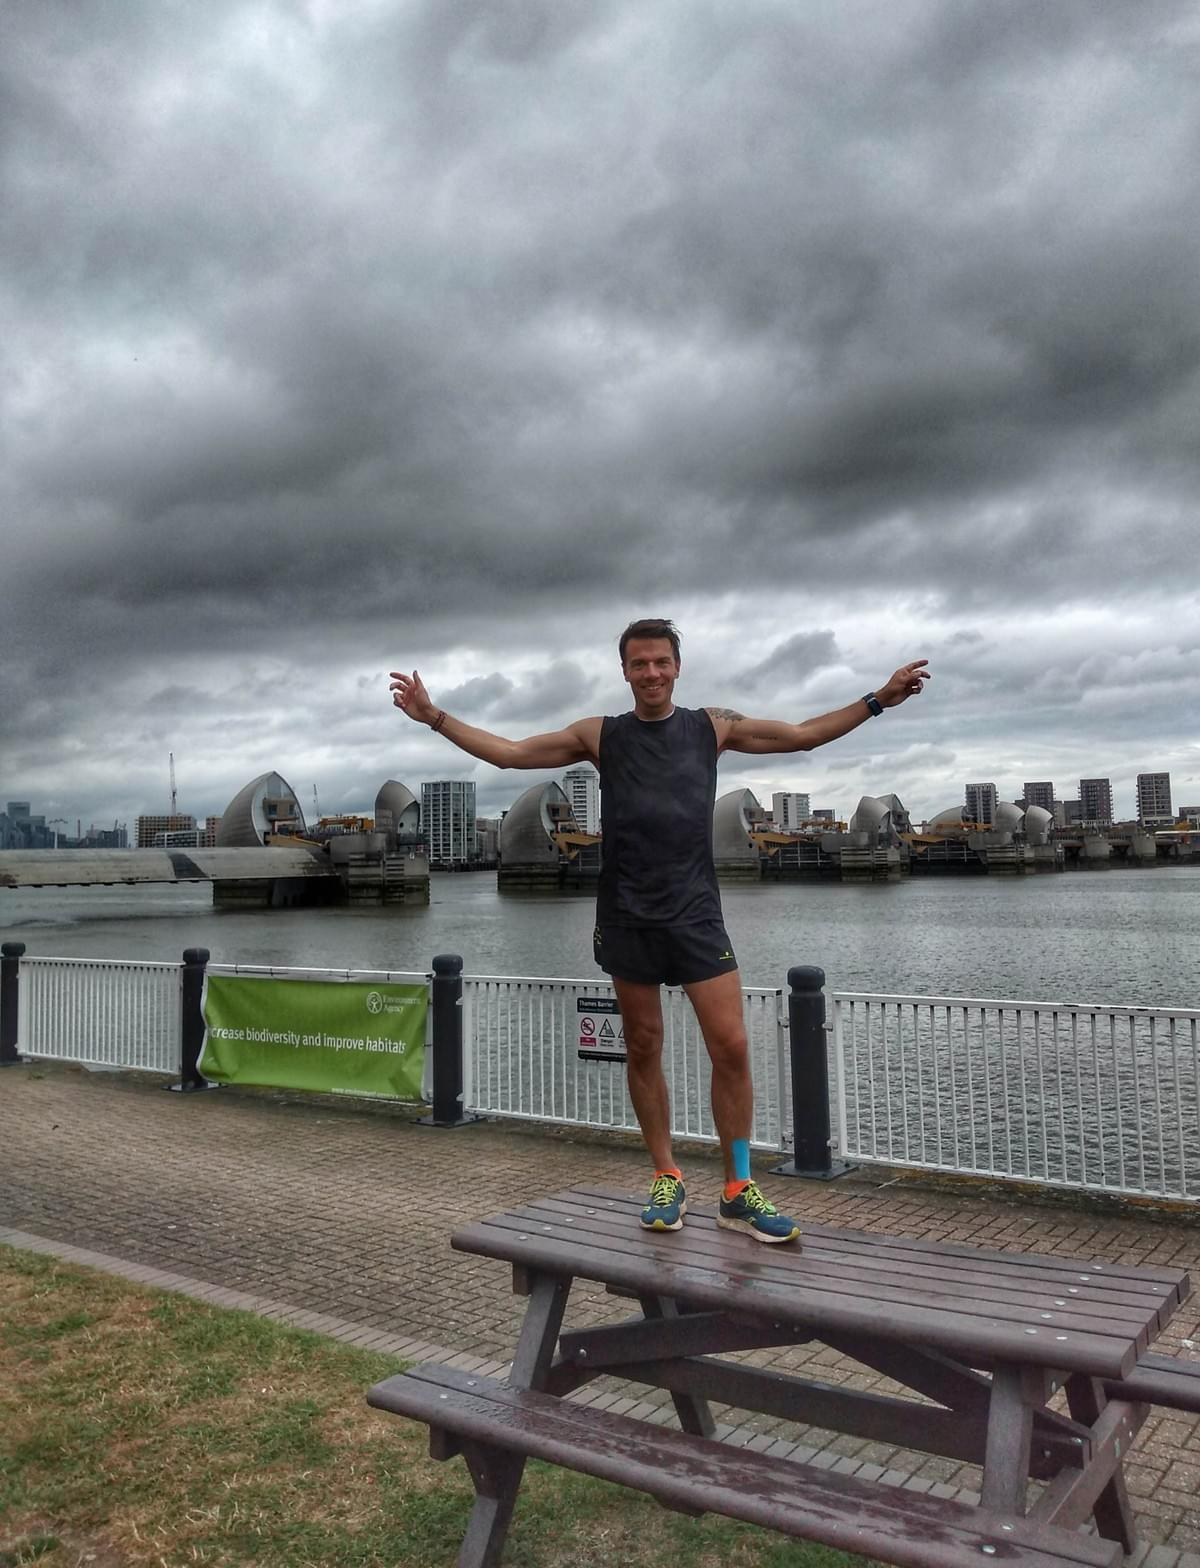 Runner poses for a celebration photo in front of the Thames Barrier, conclusion of the Thames Path